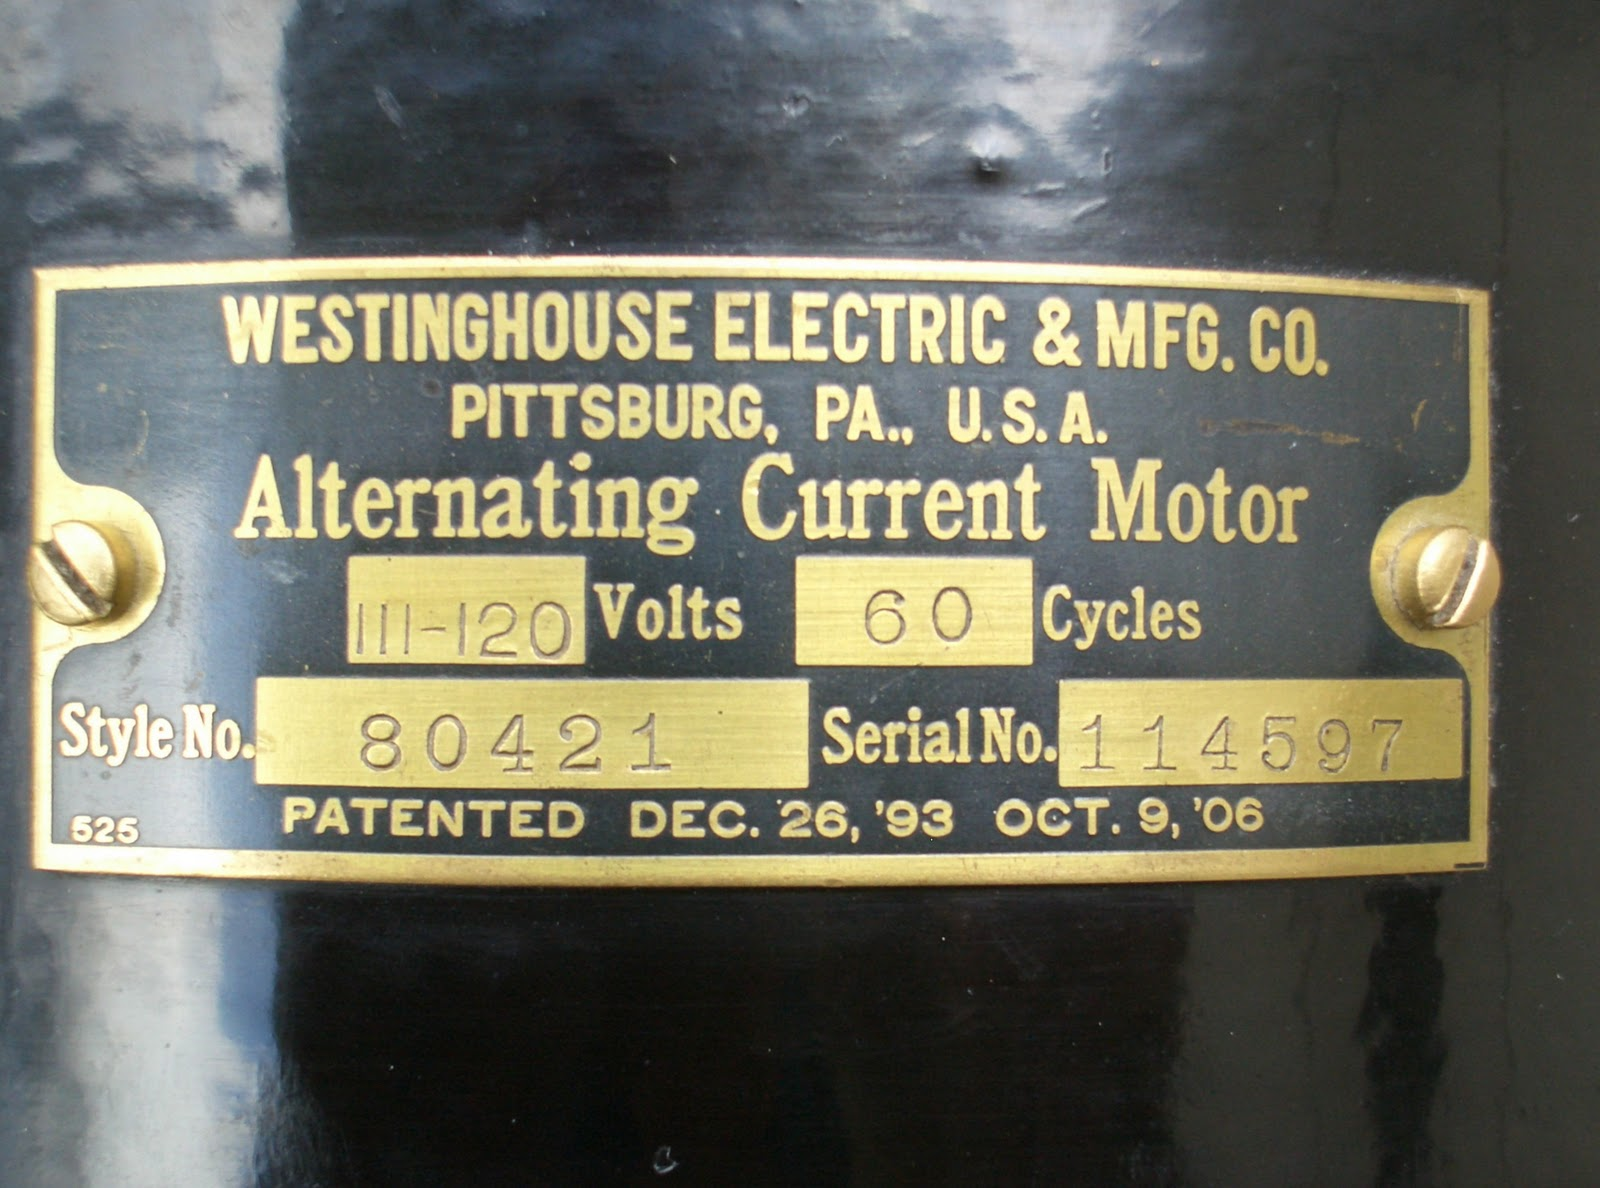 Early Electric Fans The Westinghouse Tank 1905 1911 Desk Fan Wiring Diagram Later Motor Tags With 1906 Patent Date As Above Left Are Attached To Fillister Head Screws While Earlier 1893